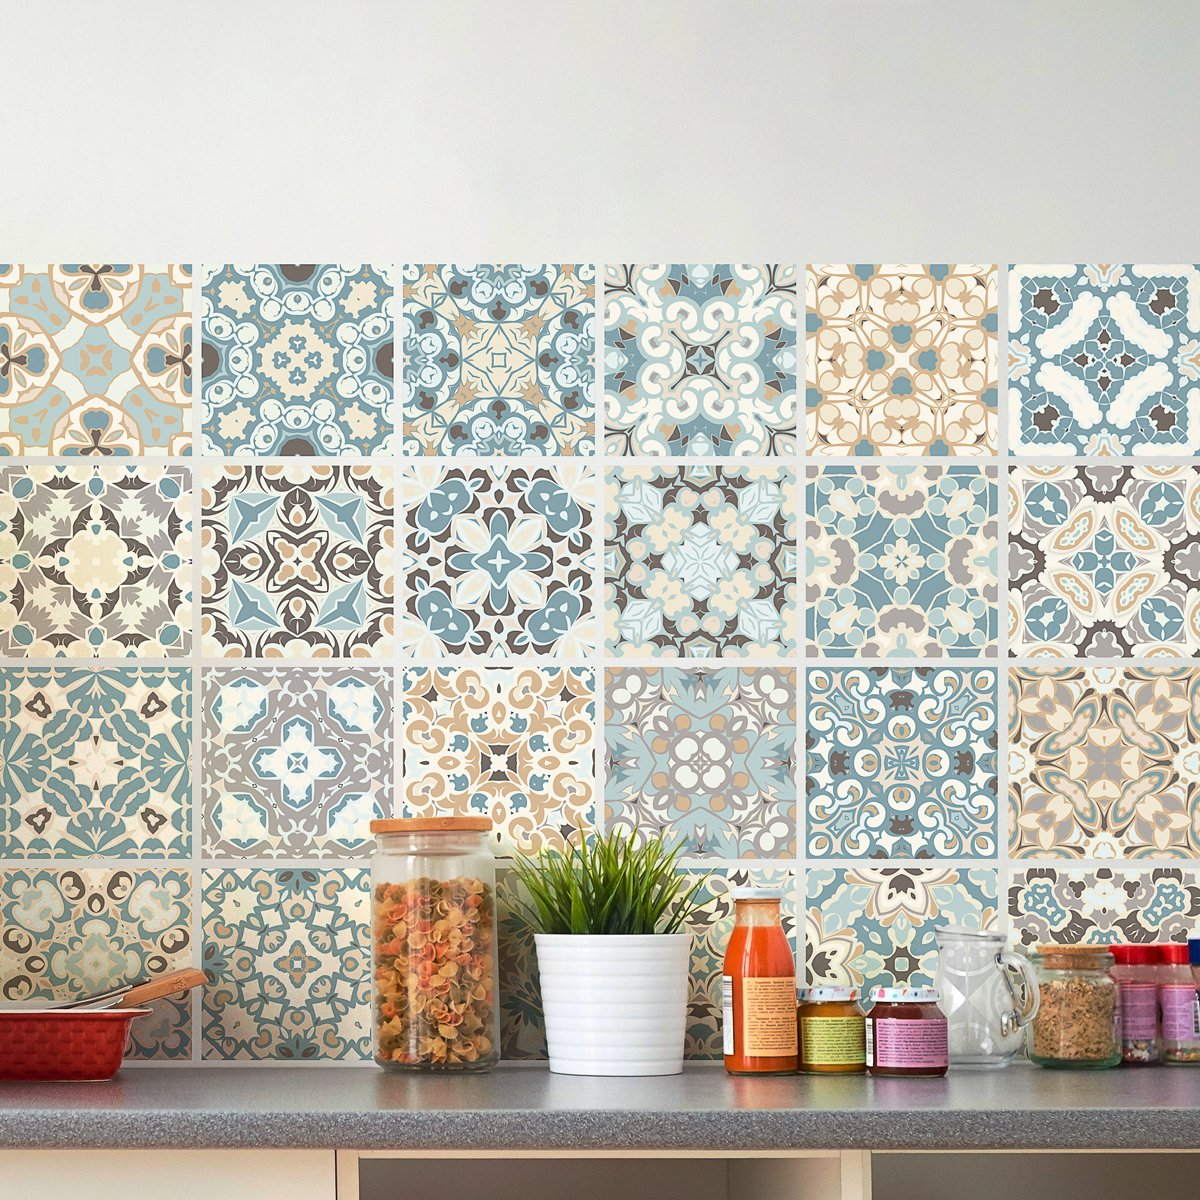 24 Adhesive Tile Adhesives Tile Stickers | Sticker – Wall tiles Bathroom and Kitchen Mosaic Tiles | Authentic Design – 10 x 10 cm, 24 Pieces Ambiance-Live